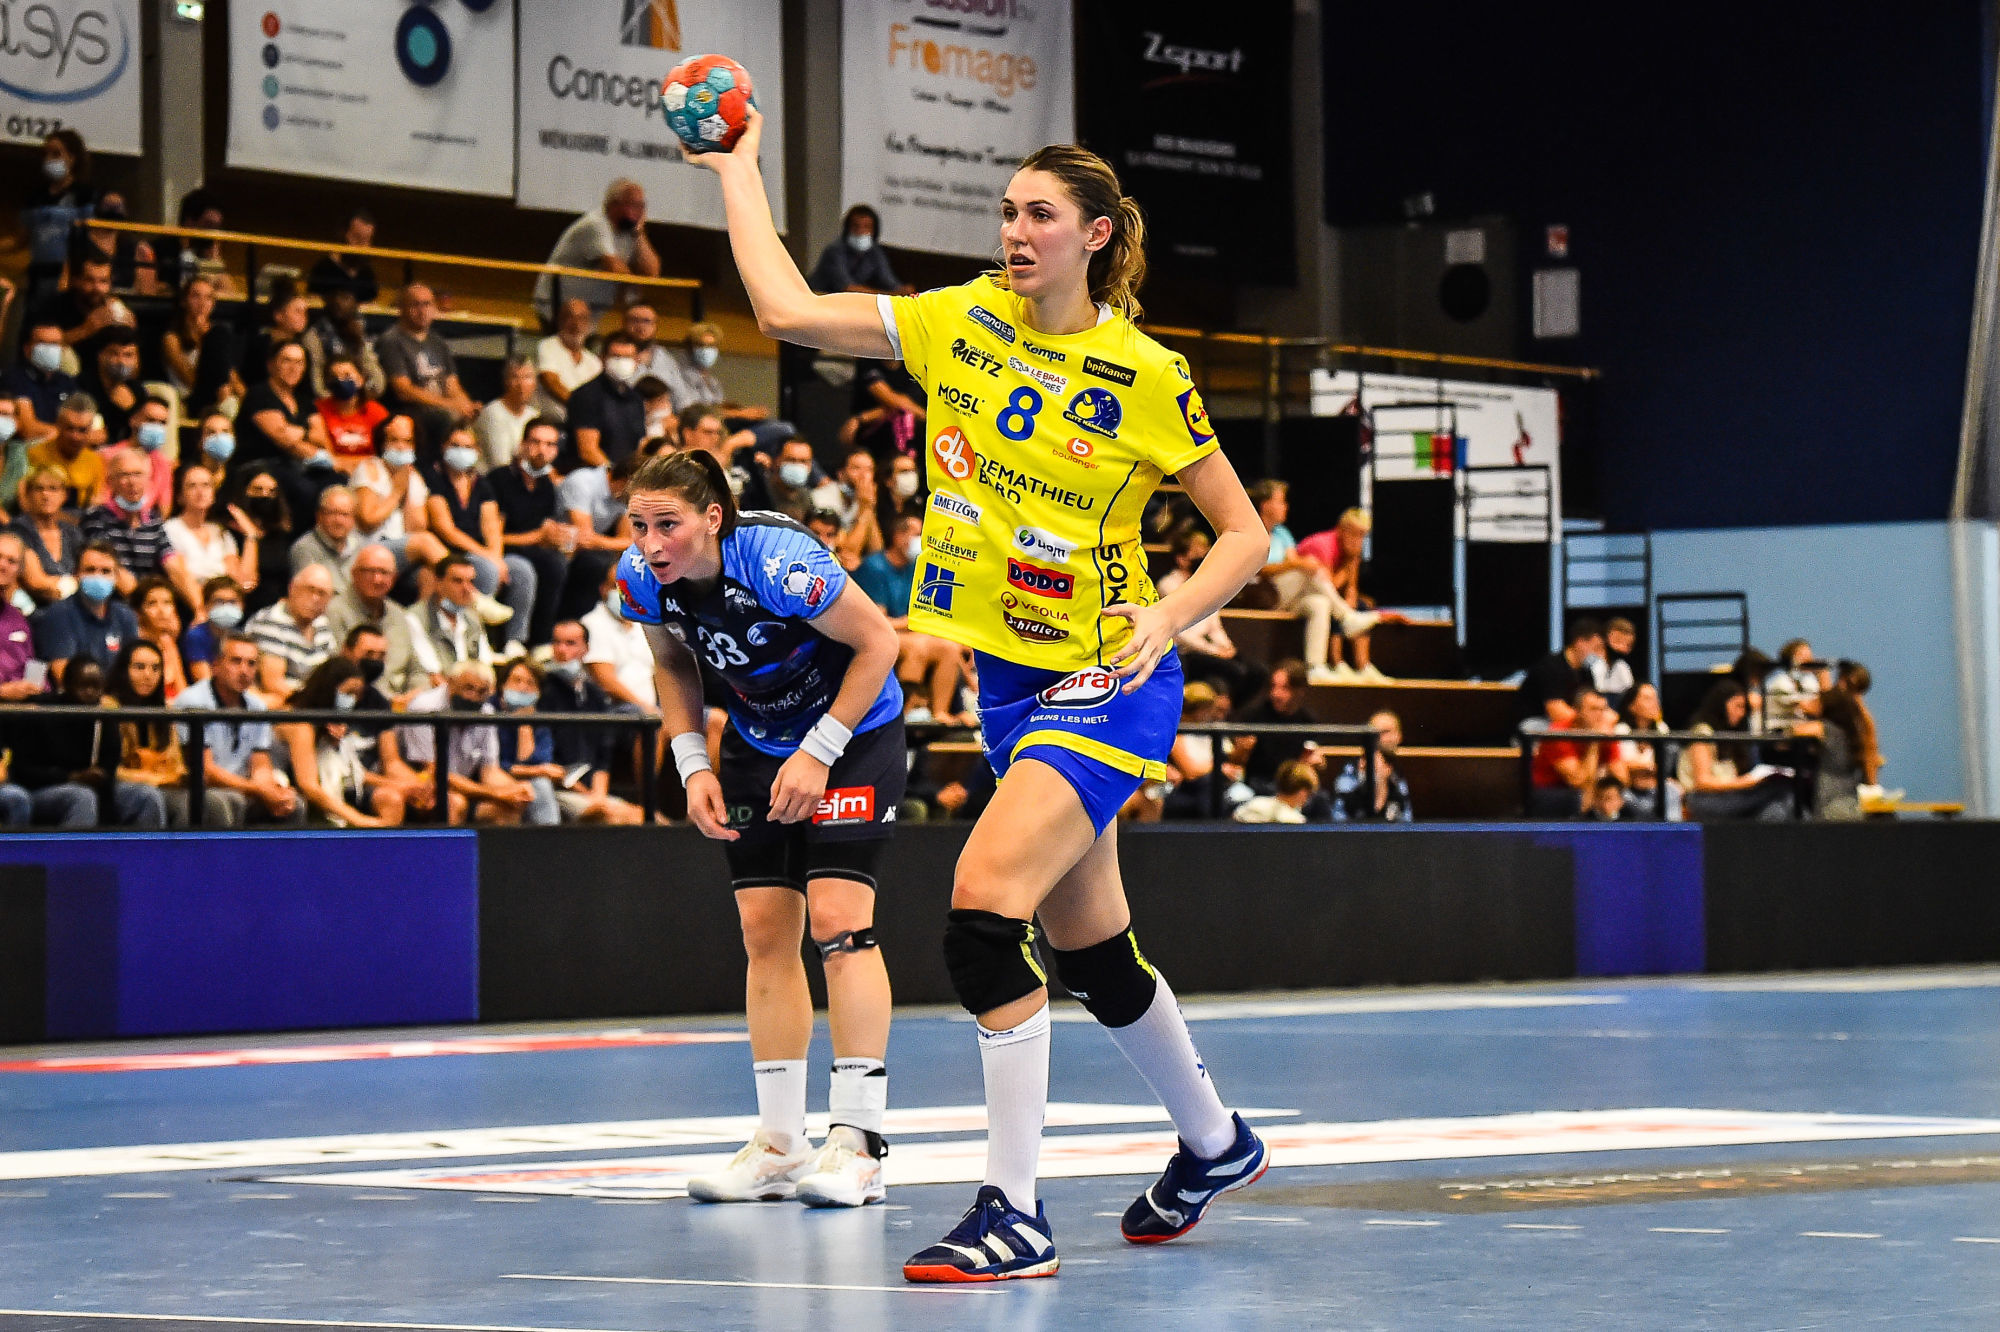 Camila MICIJEVIC of Metz during the Ligue Butaguaz Energie match between Chambray and Metz on September 15, 2021 in Chambray-les-Tours, France. (Photo by Matthieu Mirville/Icon Sport) -  (France)